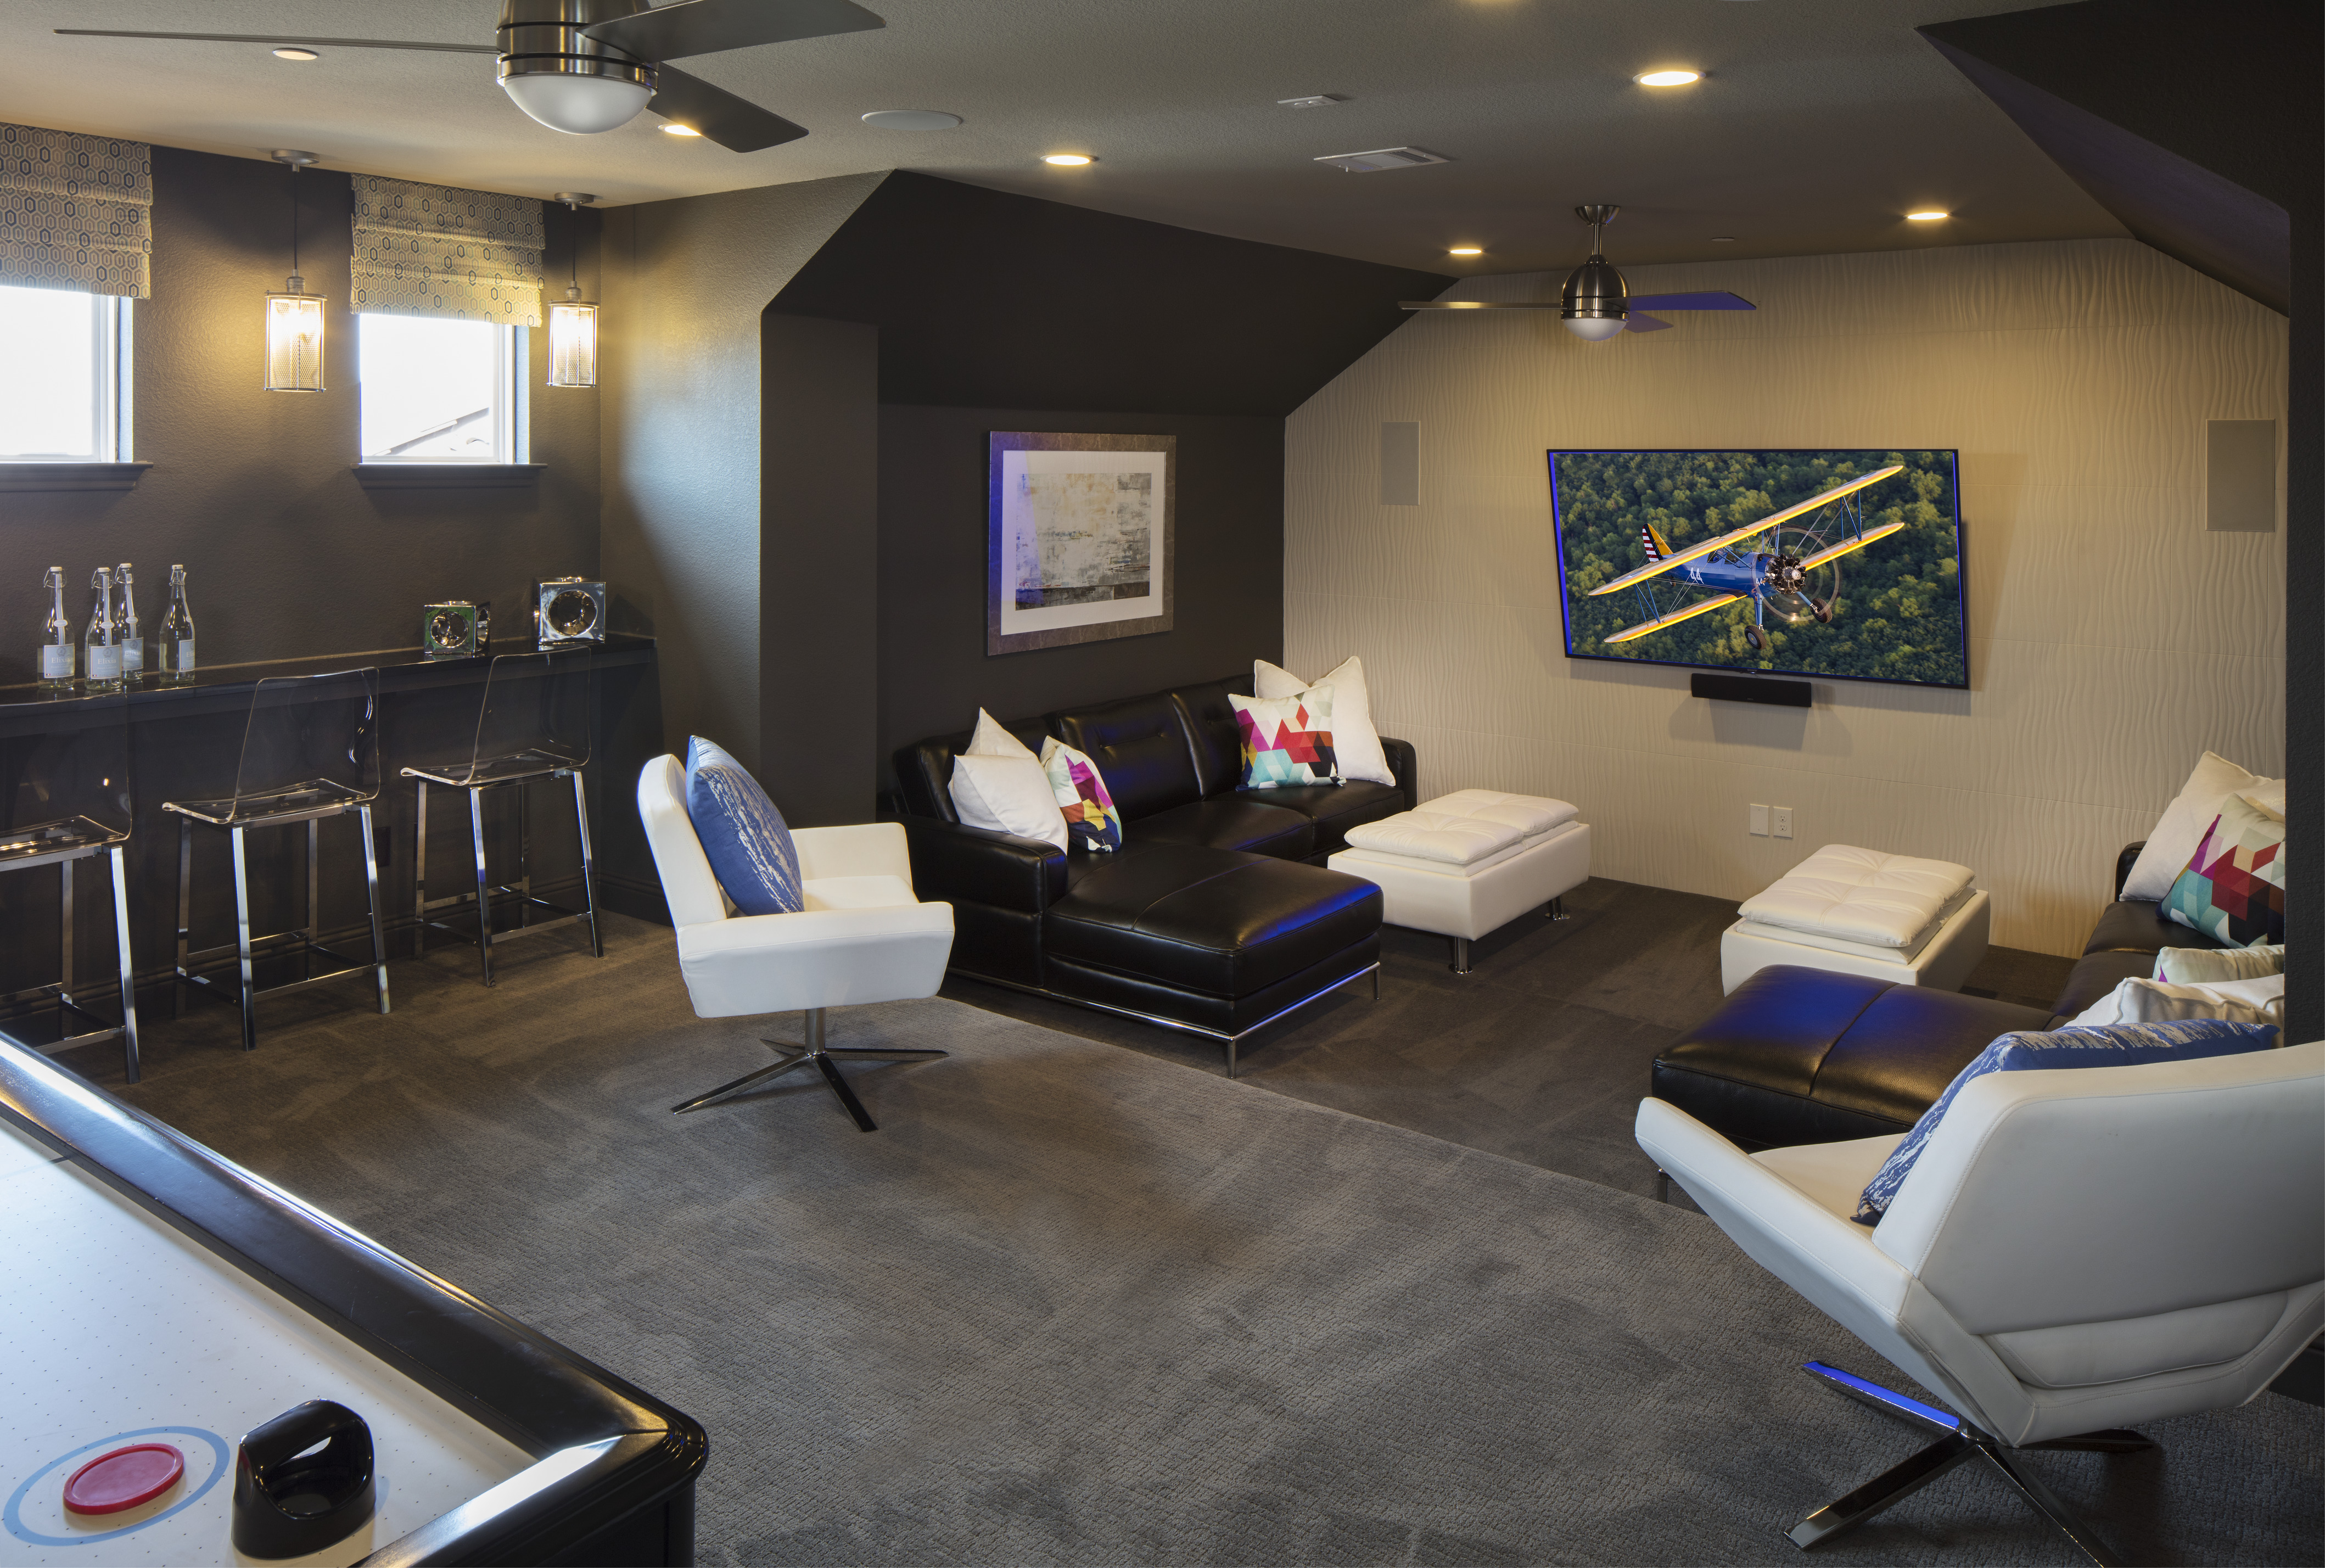 Basement game room with seats in front of a tv.